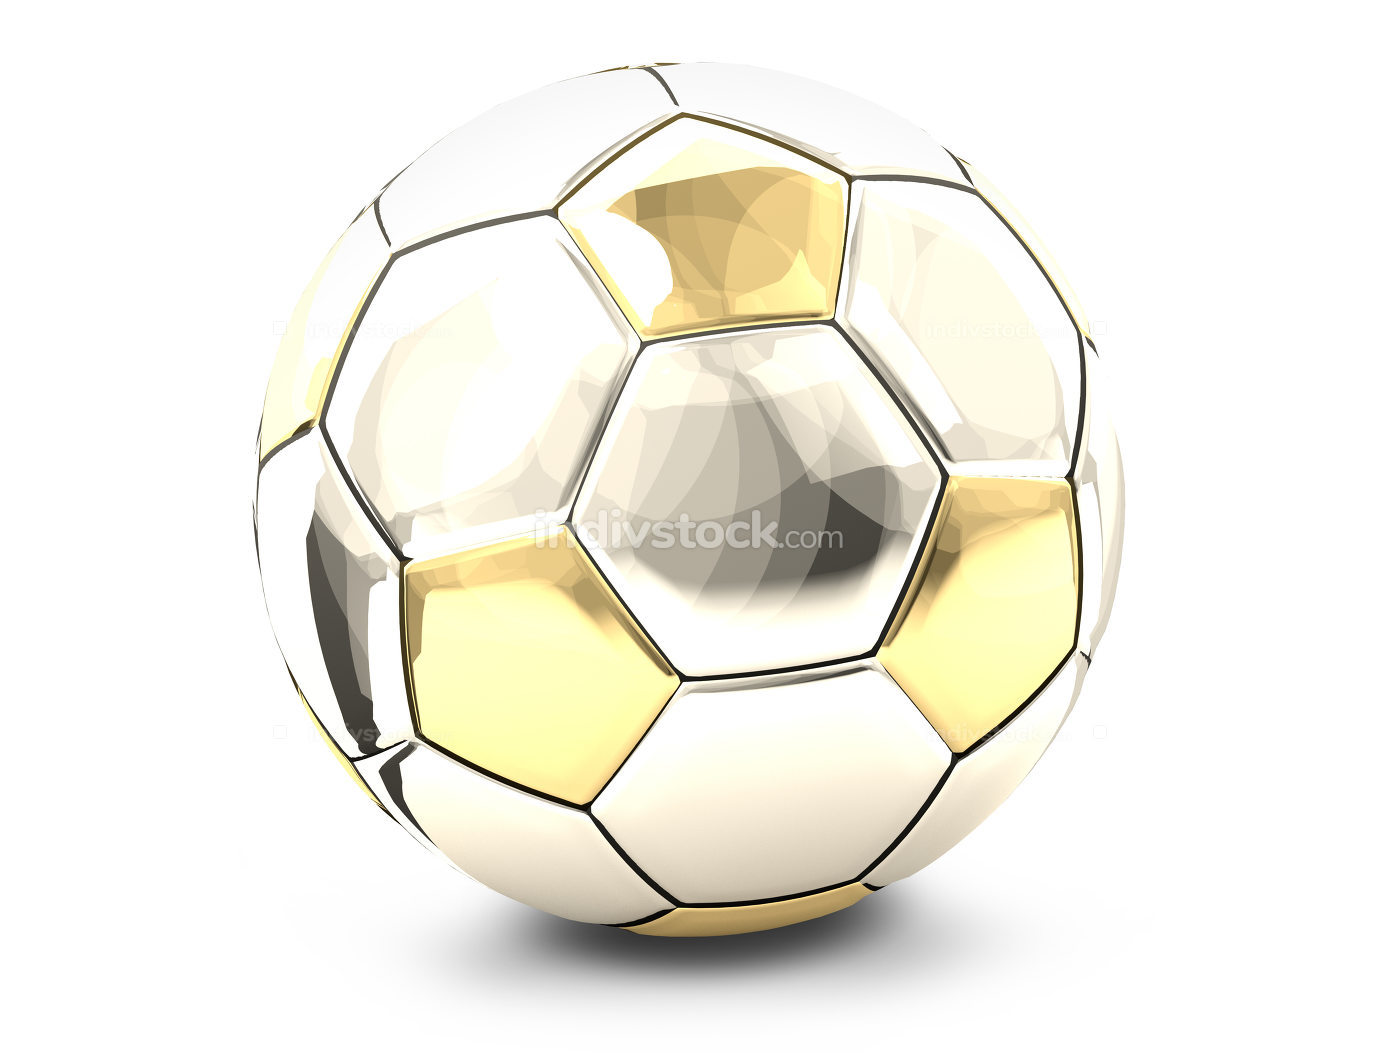 silver and golden metallic soccer football 3d rendering